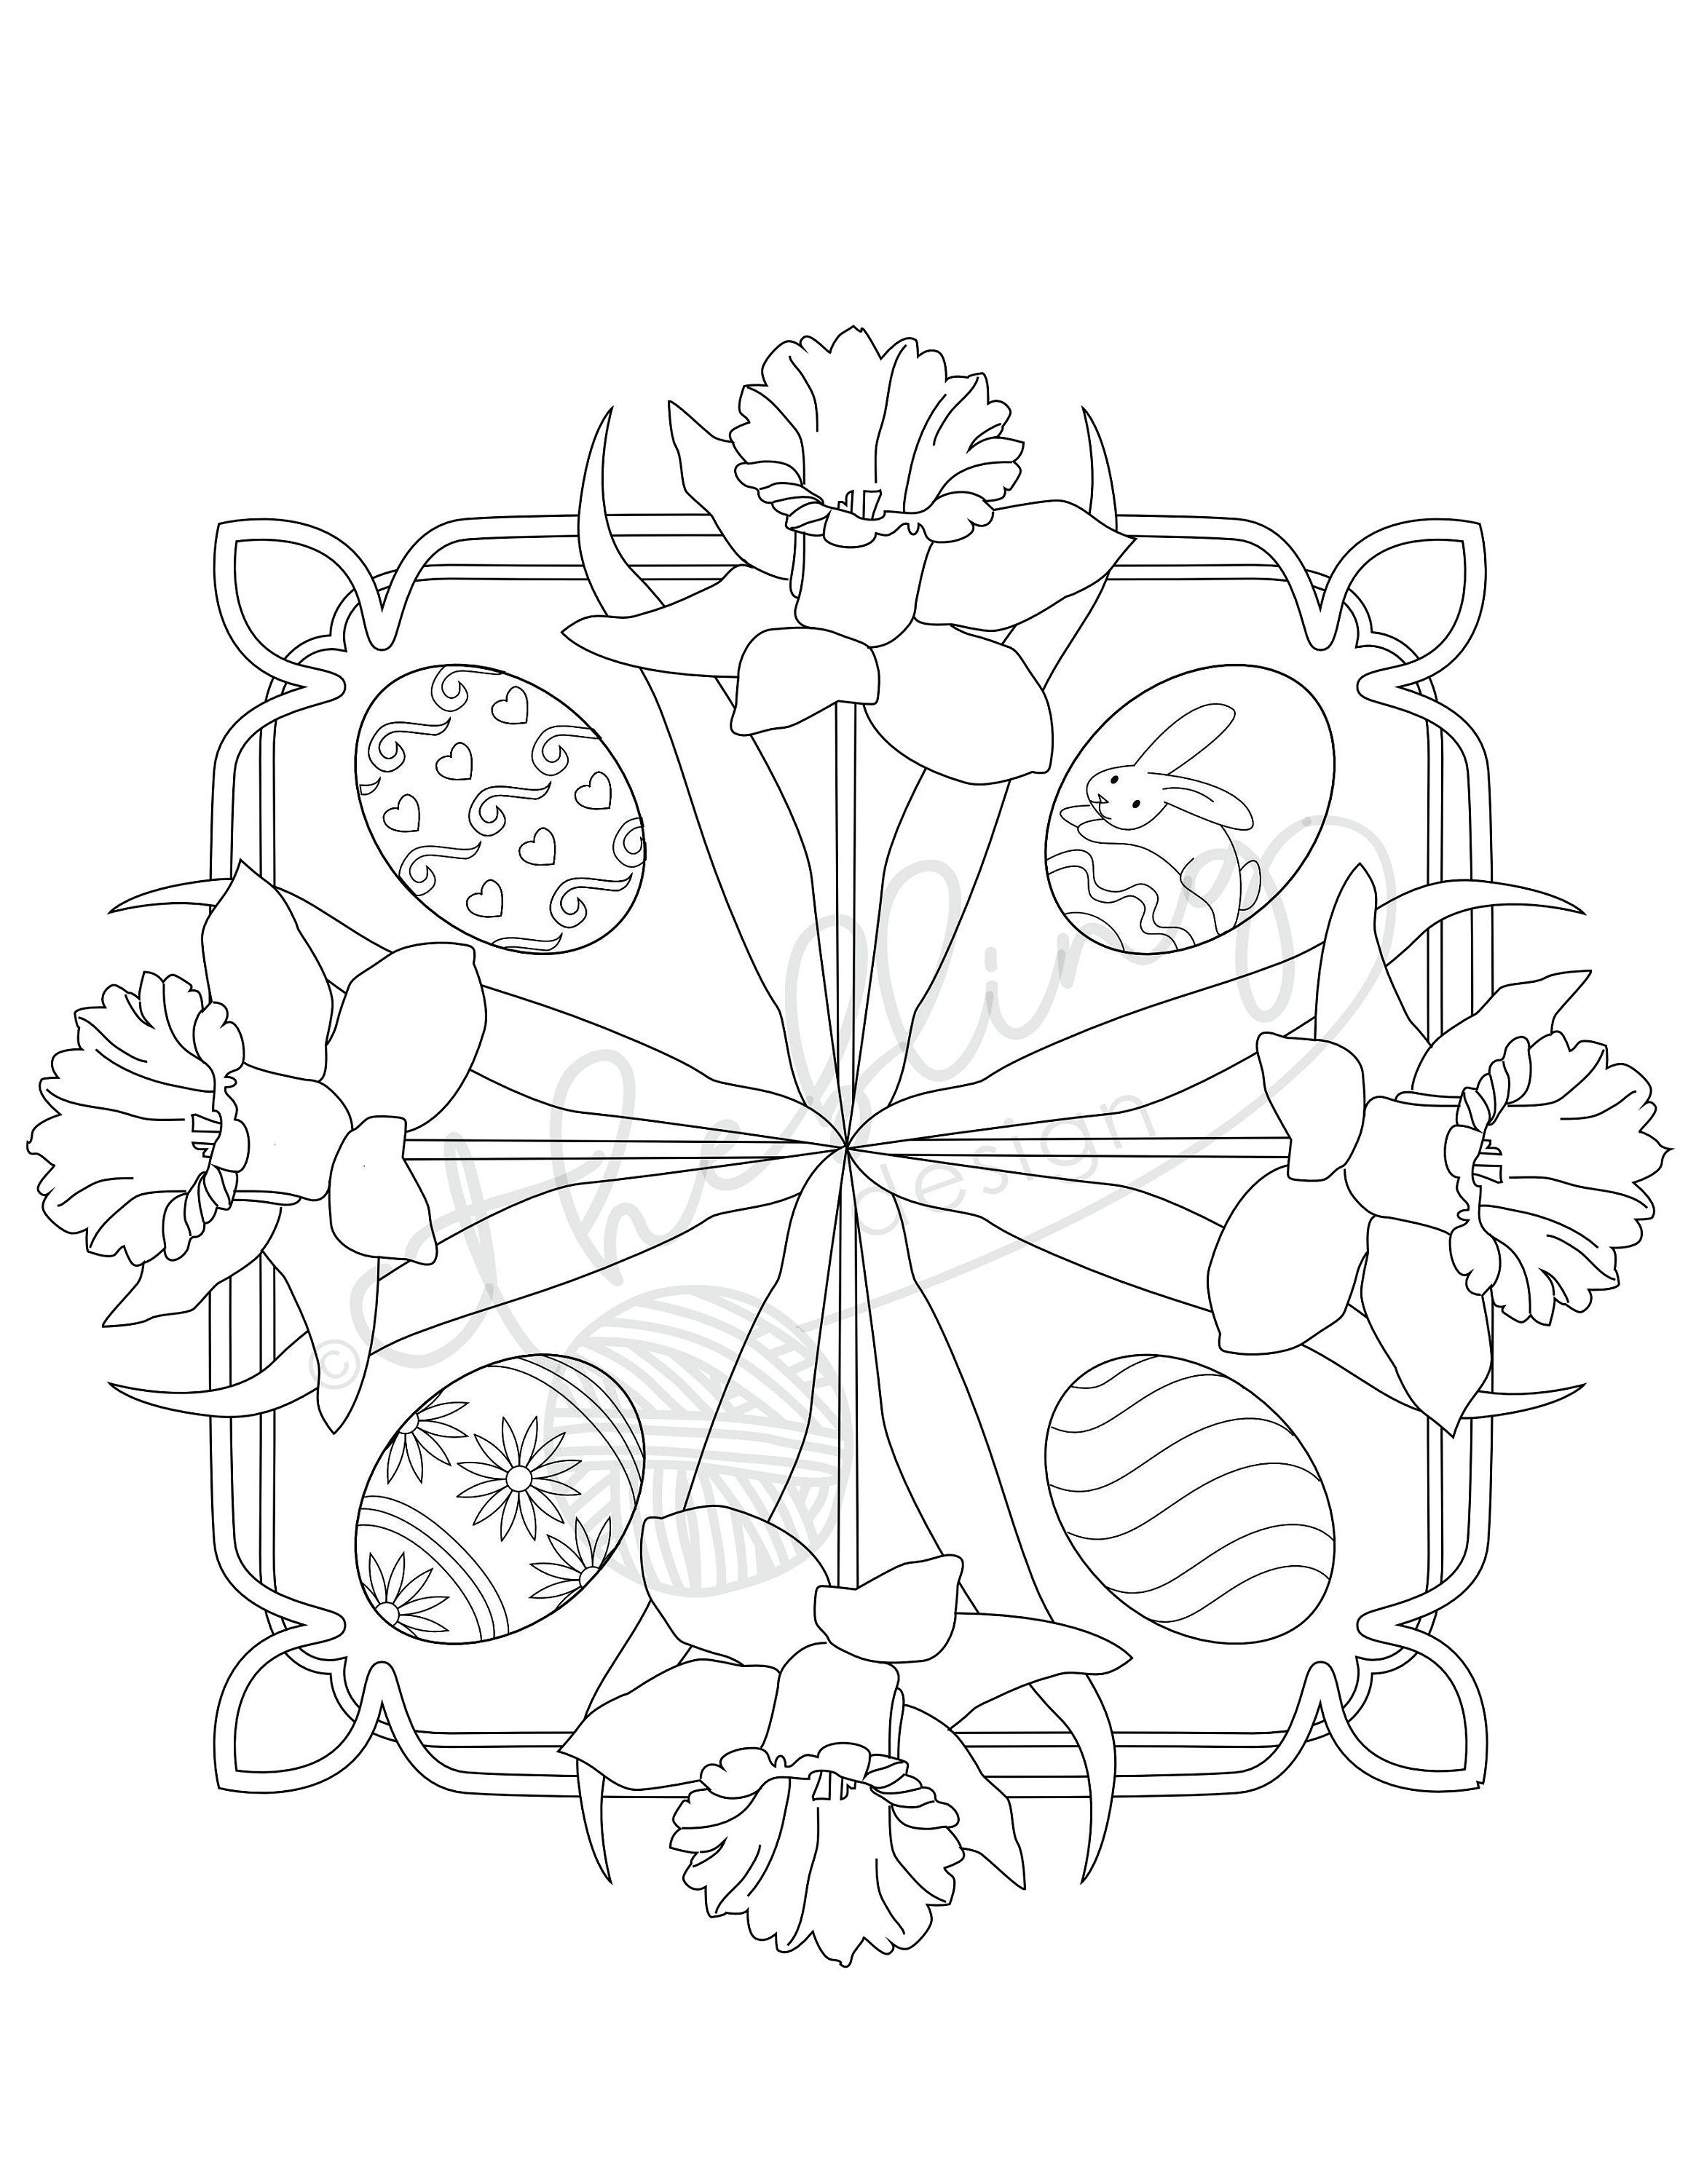 coloring pages with color guide coloriage test meilleur guide choisir coloriage color guide with pages coloring